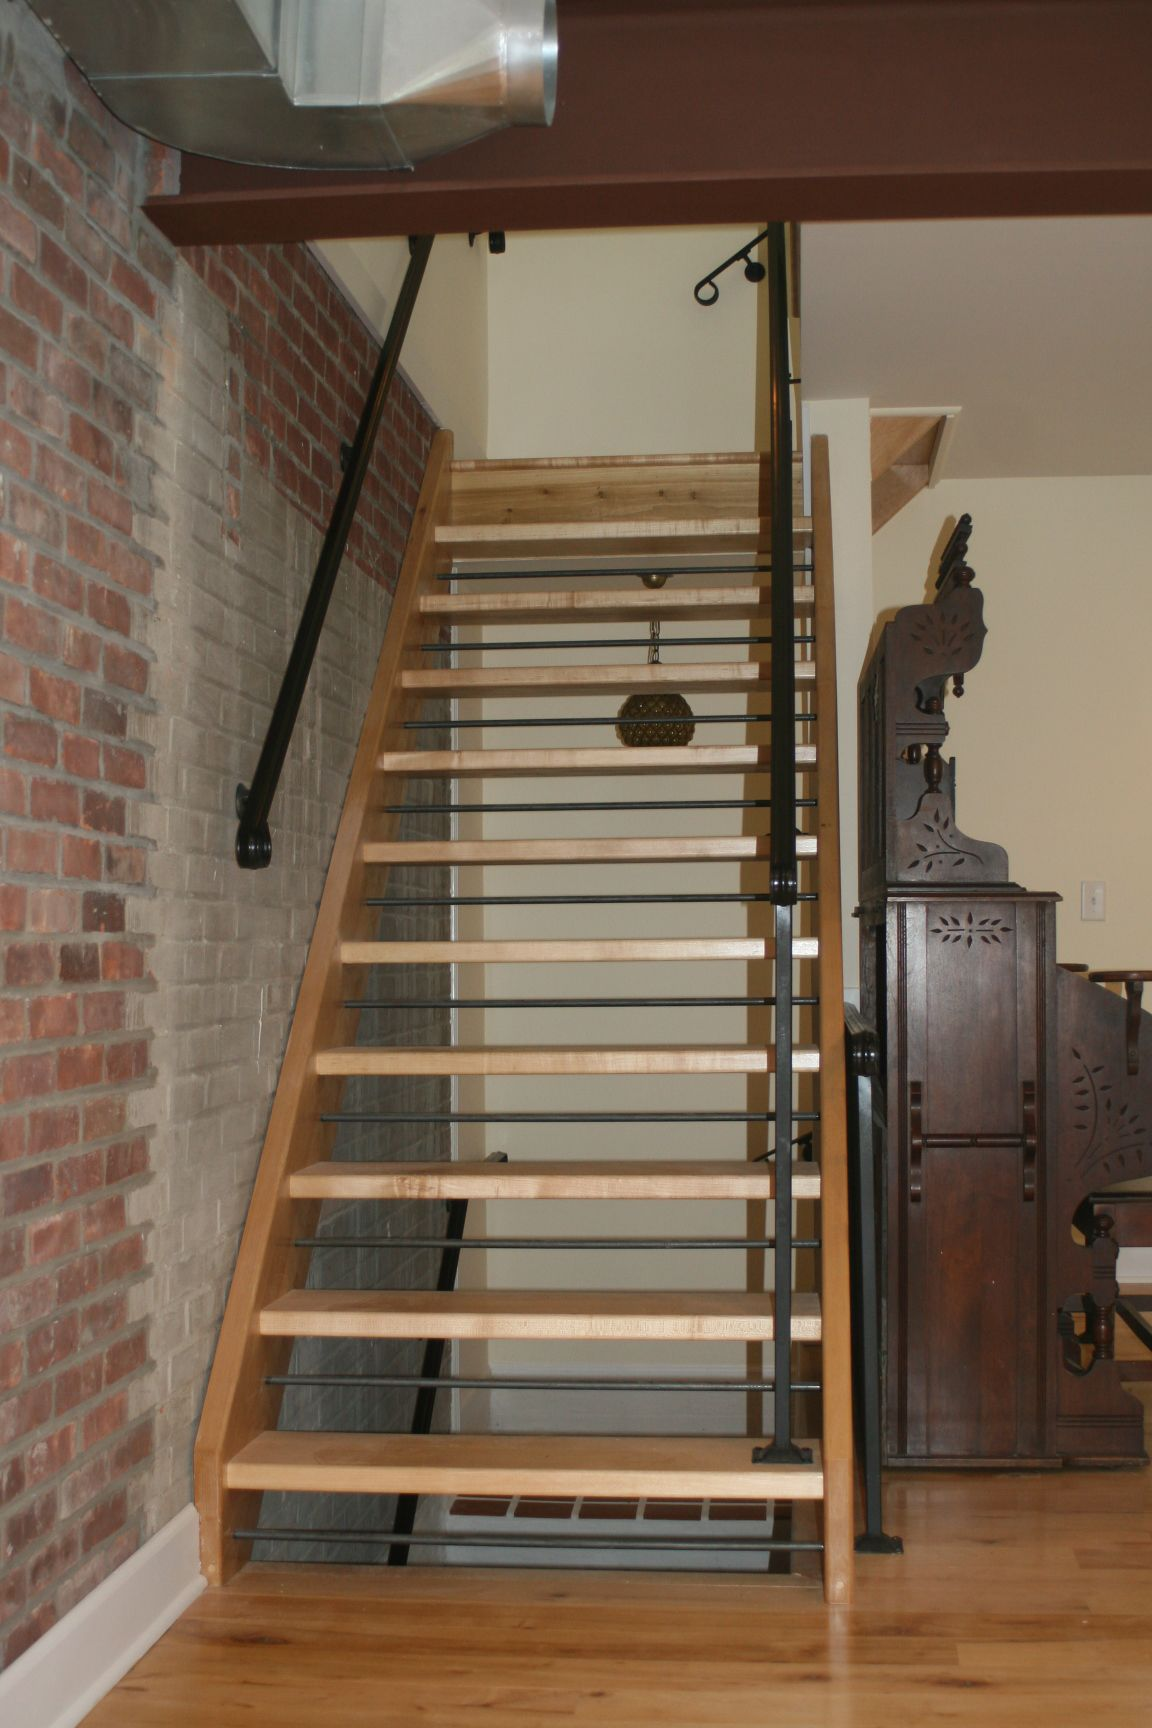 Open Staircase With Wood Treads And Risers Give Us A Call 518 384 1554